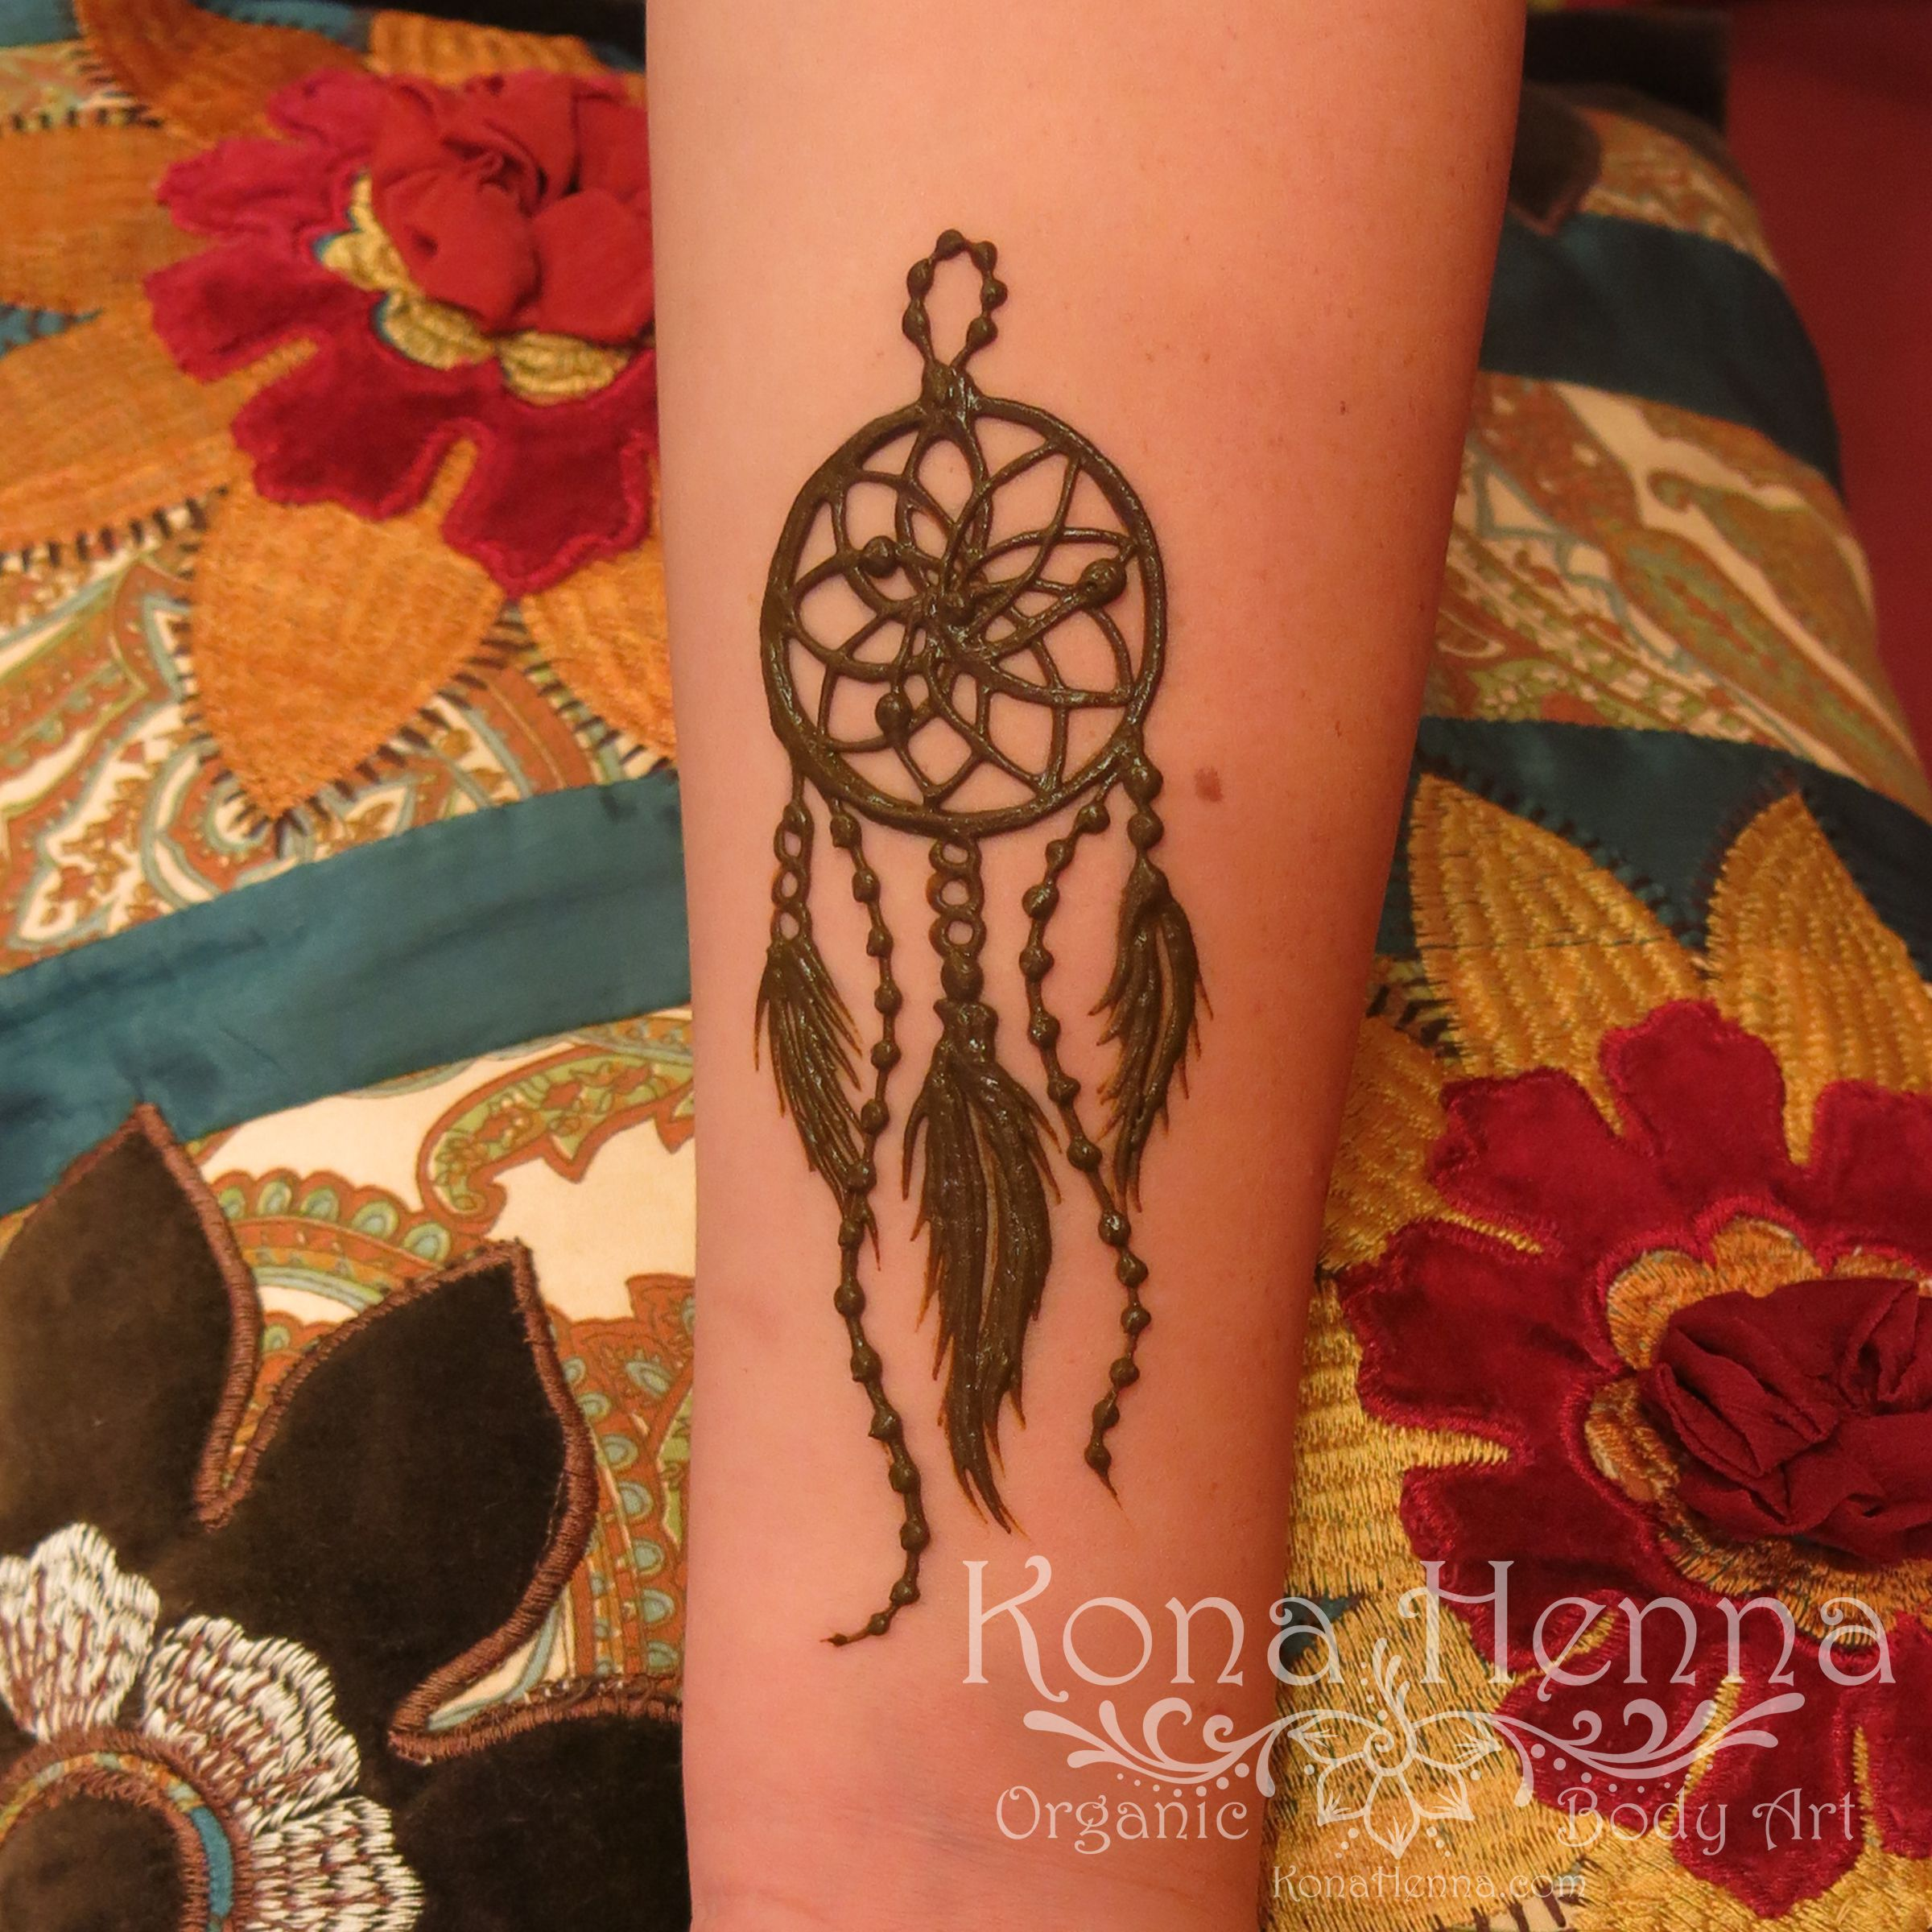 Professional Henna Tattoo Artists For Hire In Austin: Dreamcatcher Henna. Organic Henna Products. Professional